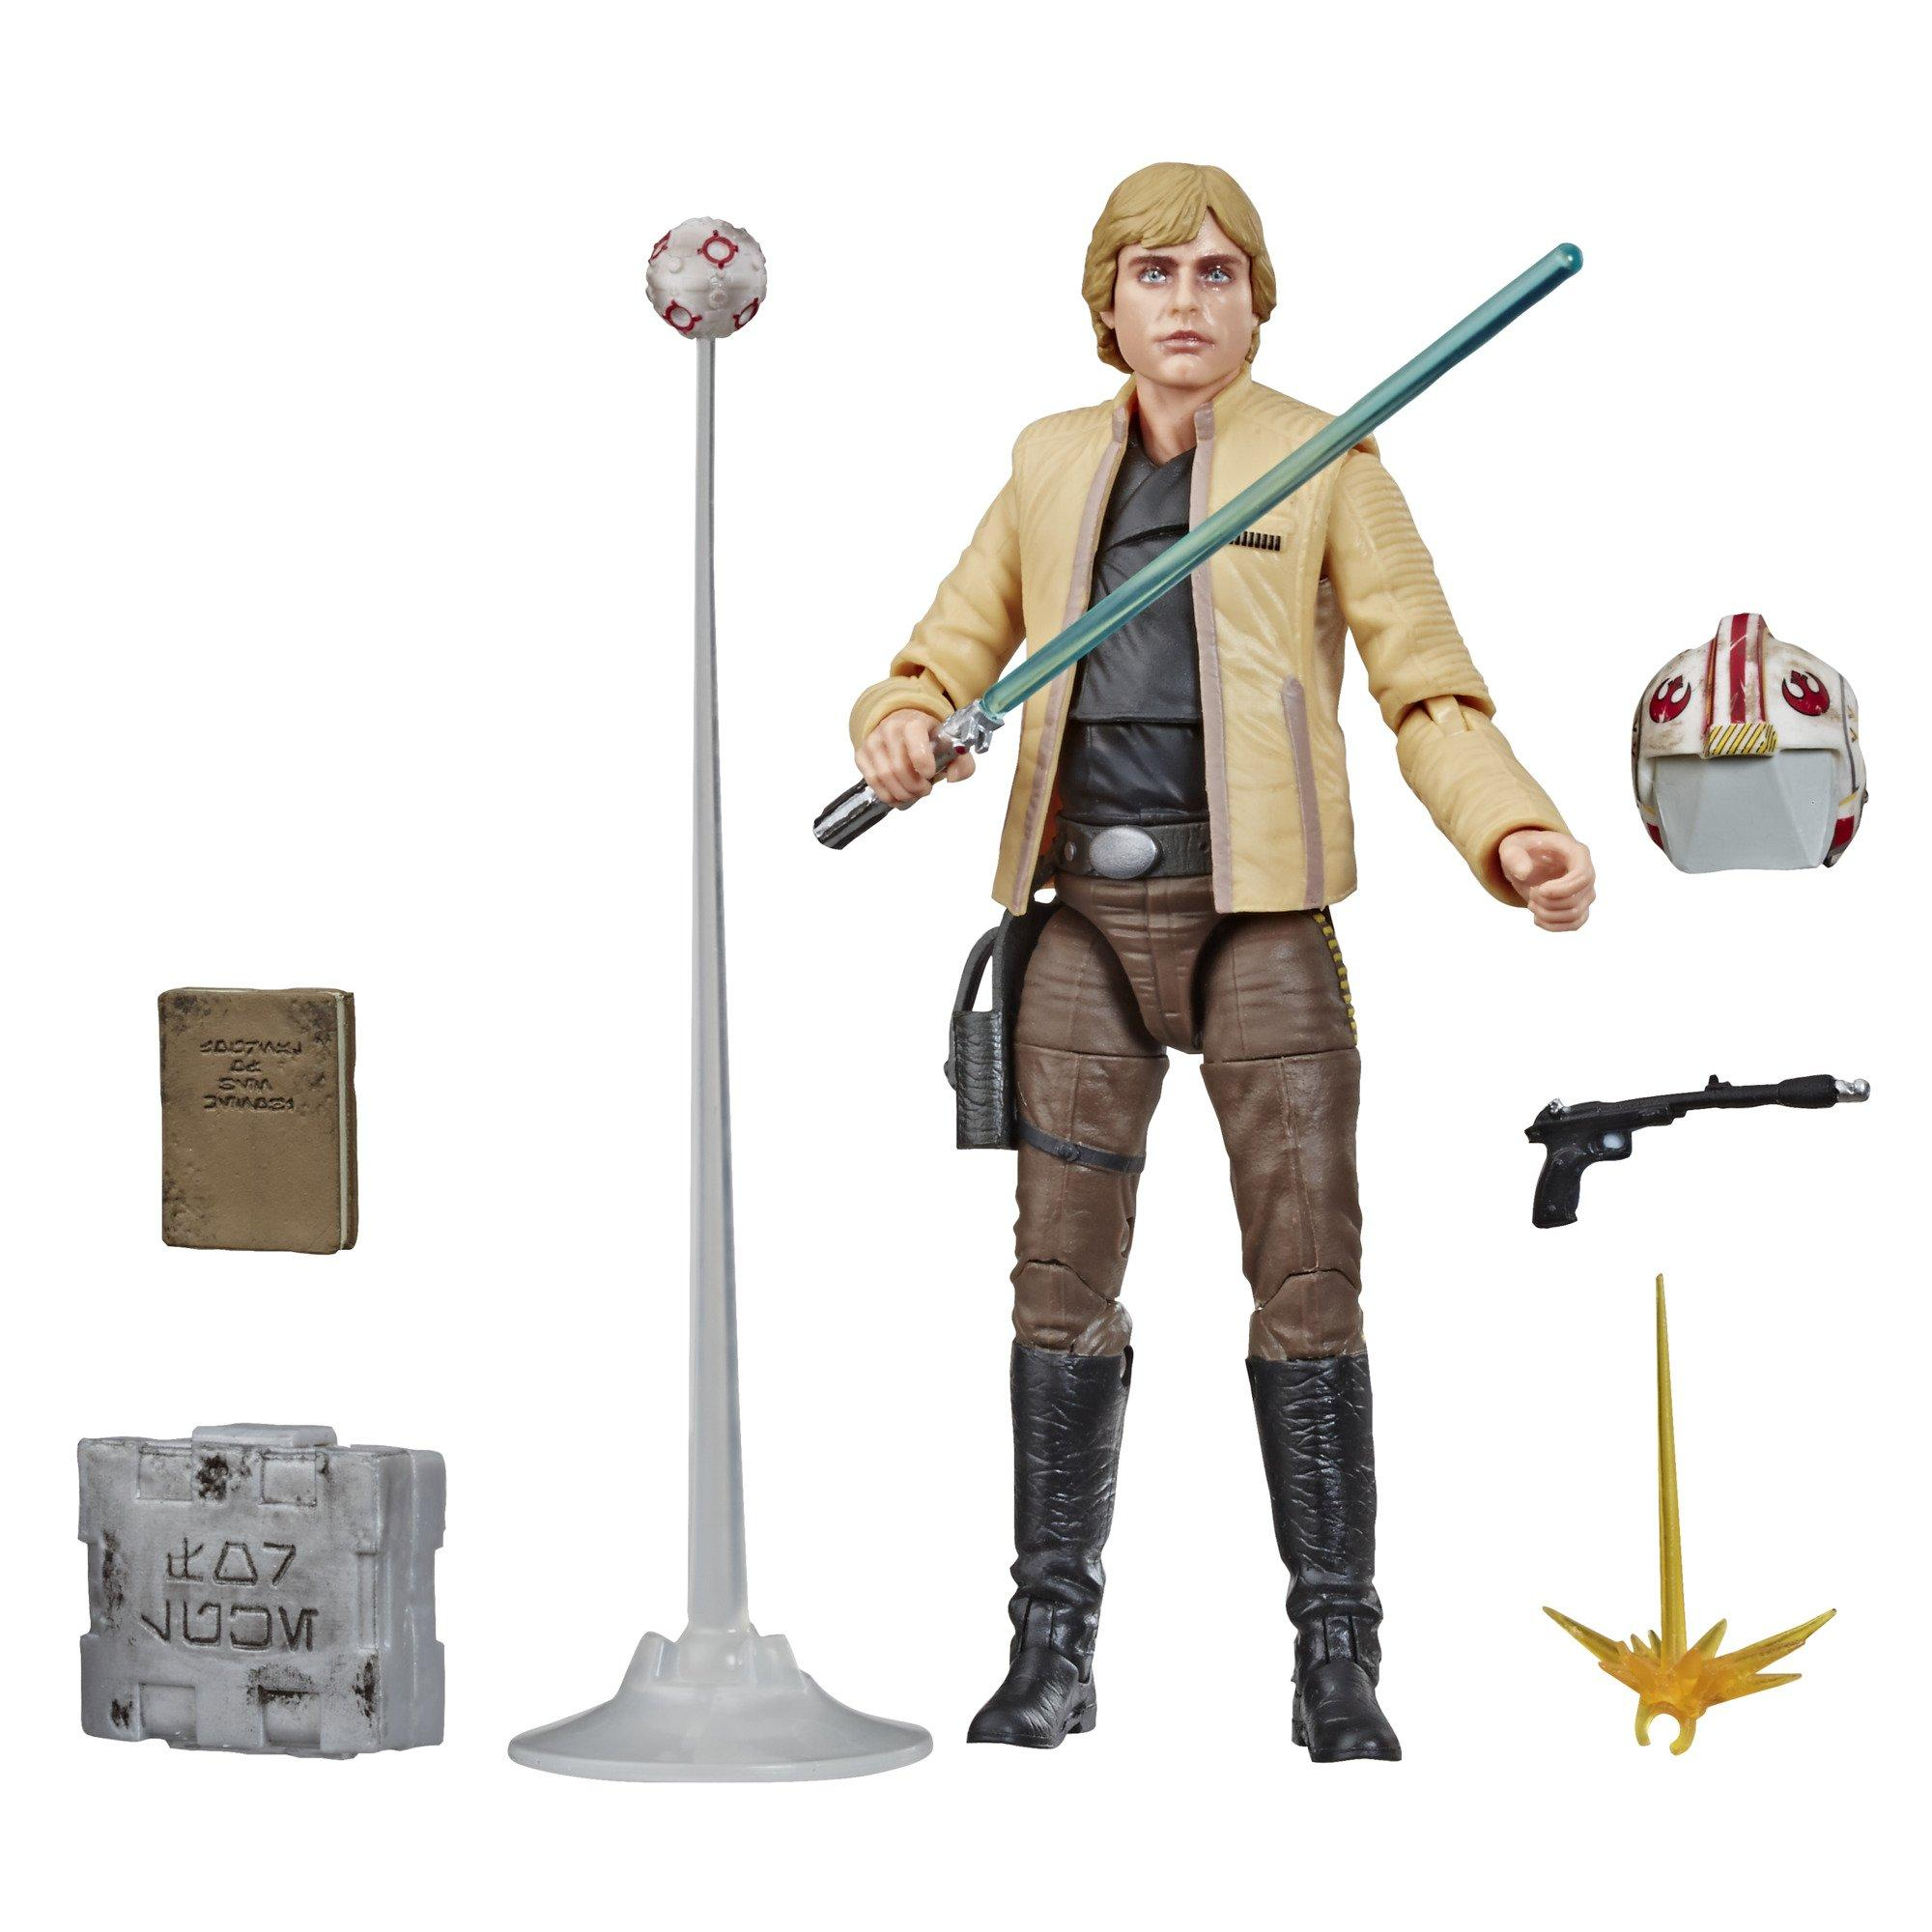 Hasbro Star Wars Luke Skywalker With Exclusive Collector Coin Action Figure for sale online